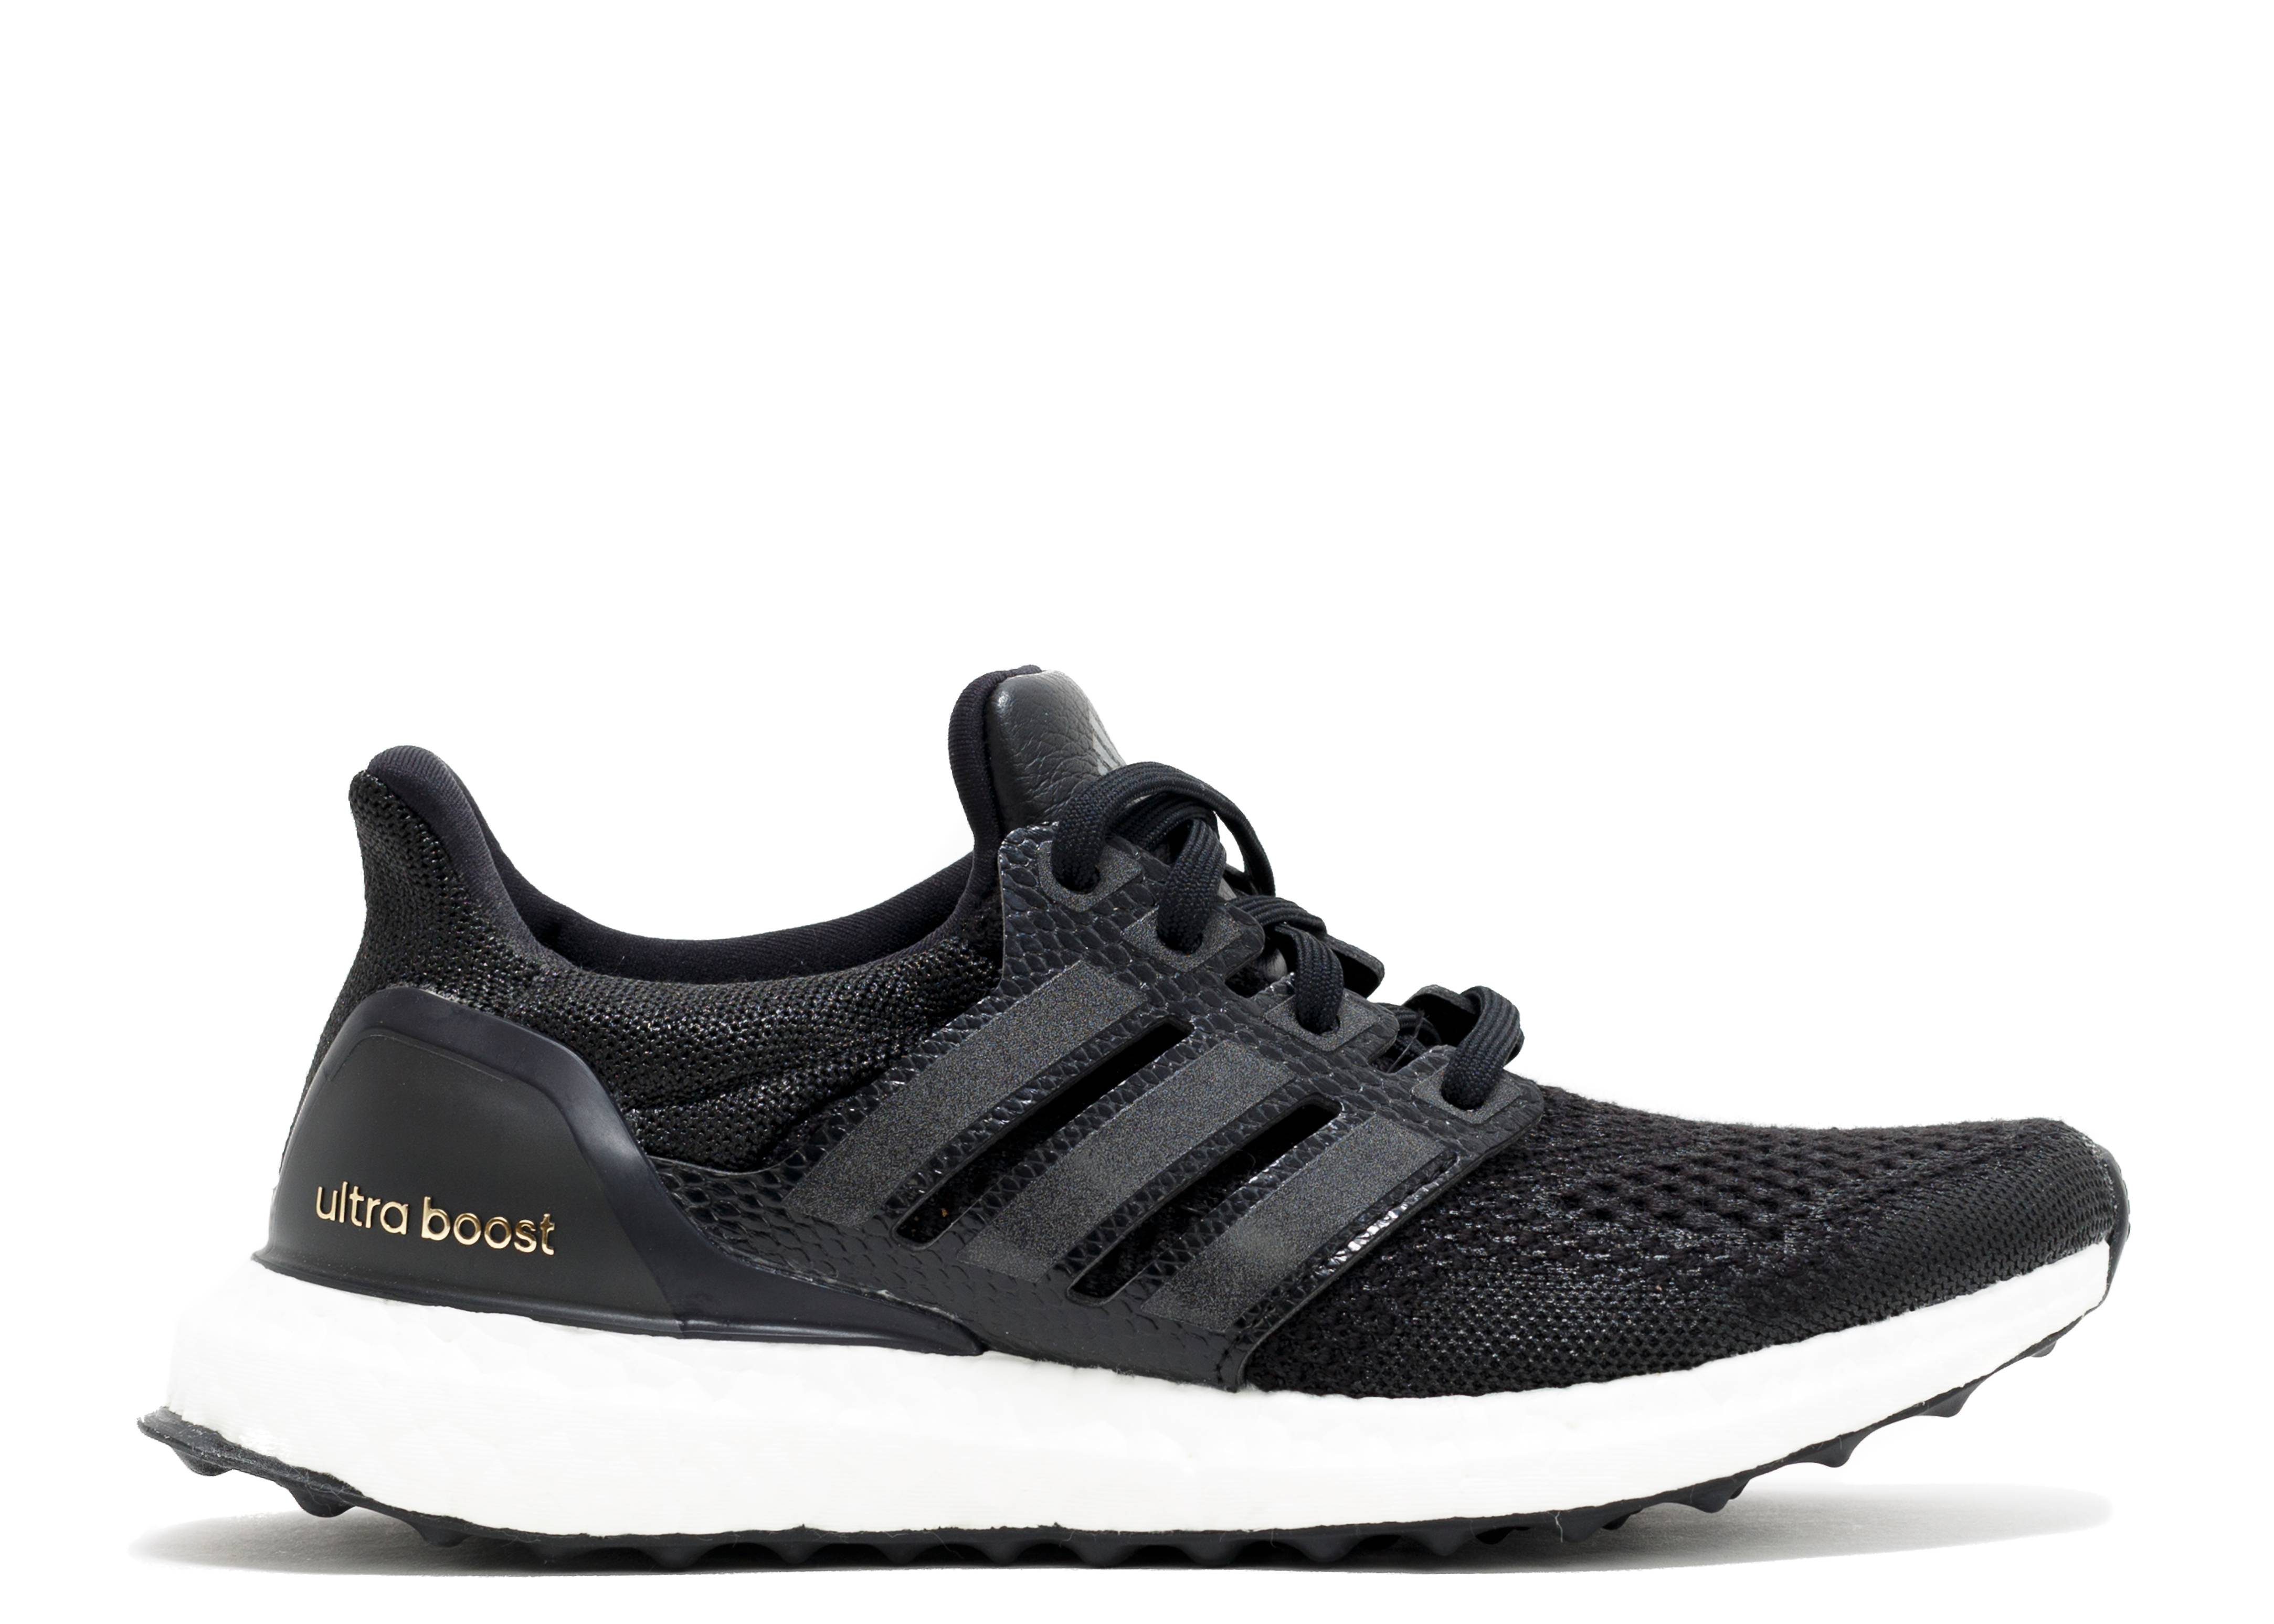 adidas ultra boost j d black adidas ultra boost j d black france soldes adidas ultra boost j d. Black Bedroom Furniture Sets. Home Design Ideas